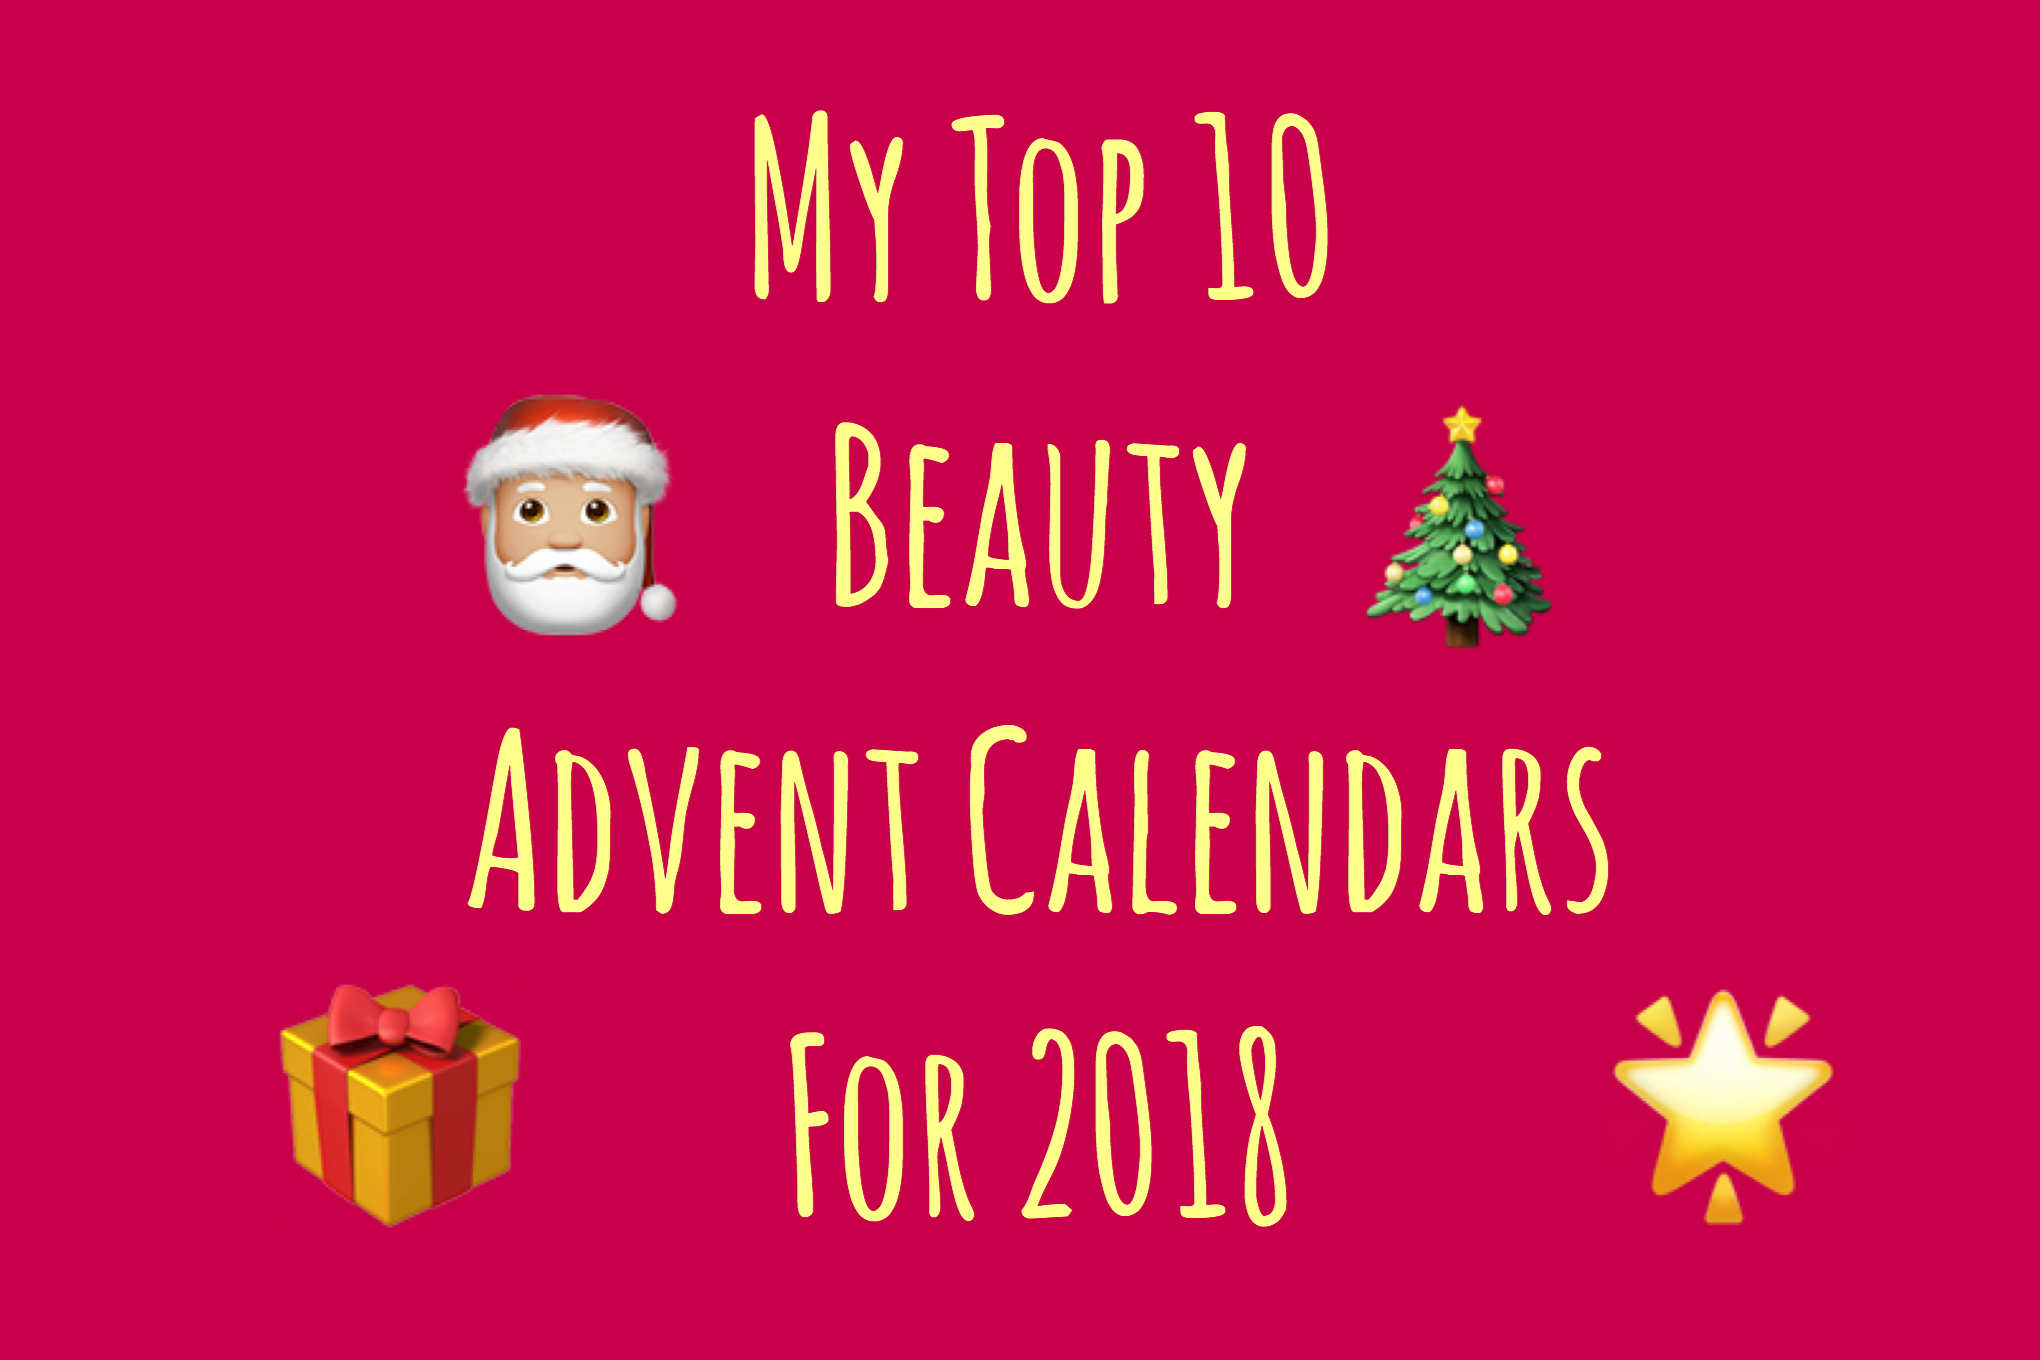 My Top 10 Beauty Advent Calendar for 2018